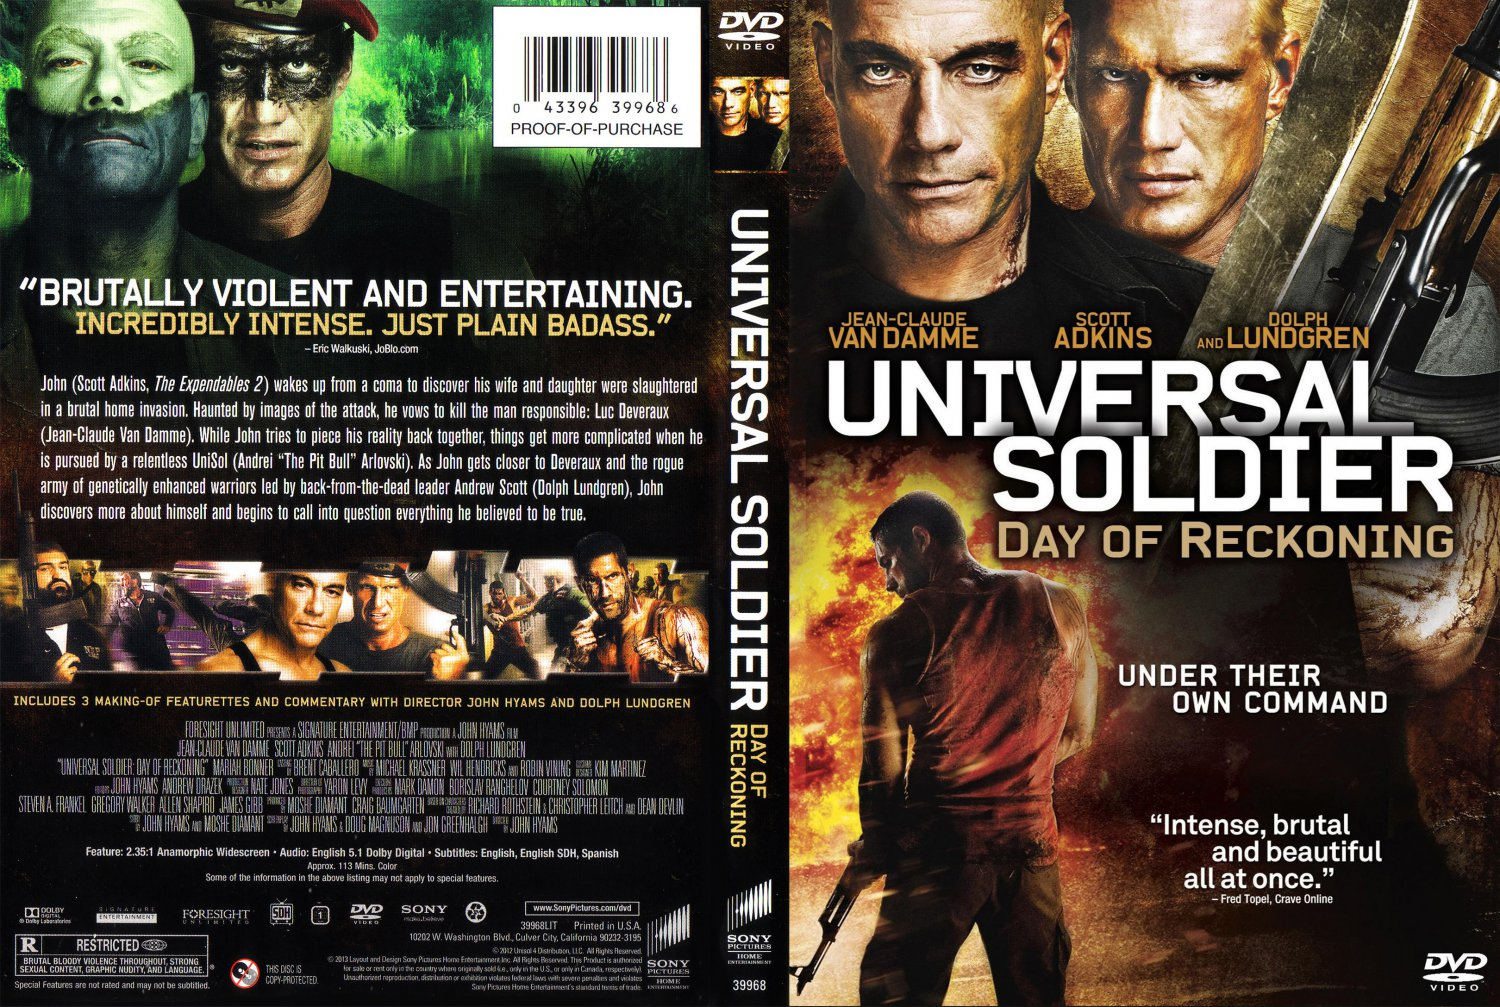 Universal Soldier Day Of Reckoning - Movie DVD Scanned ...